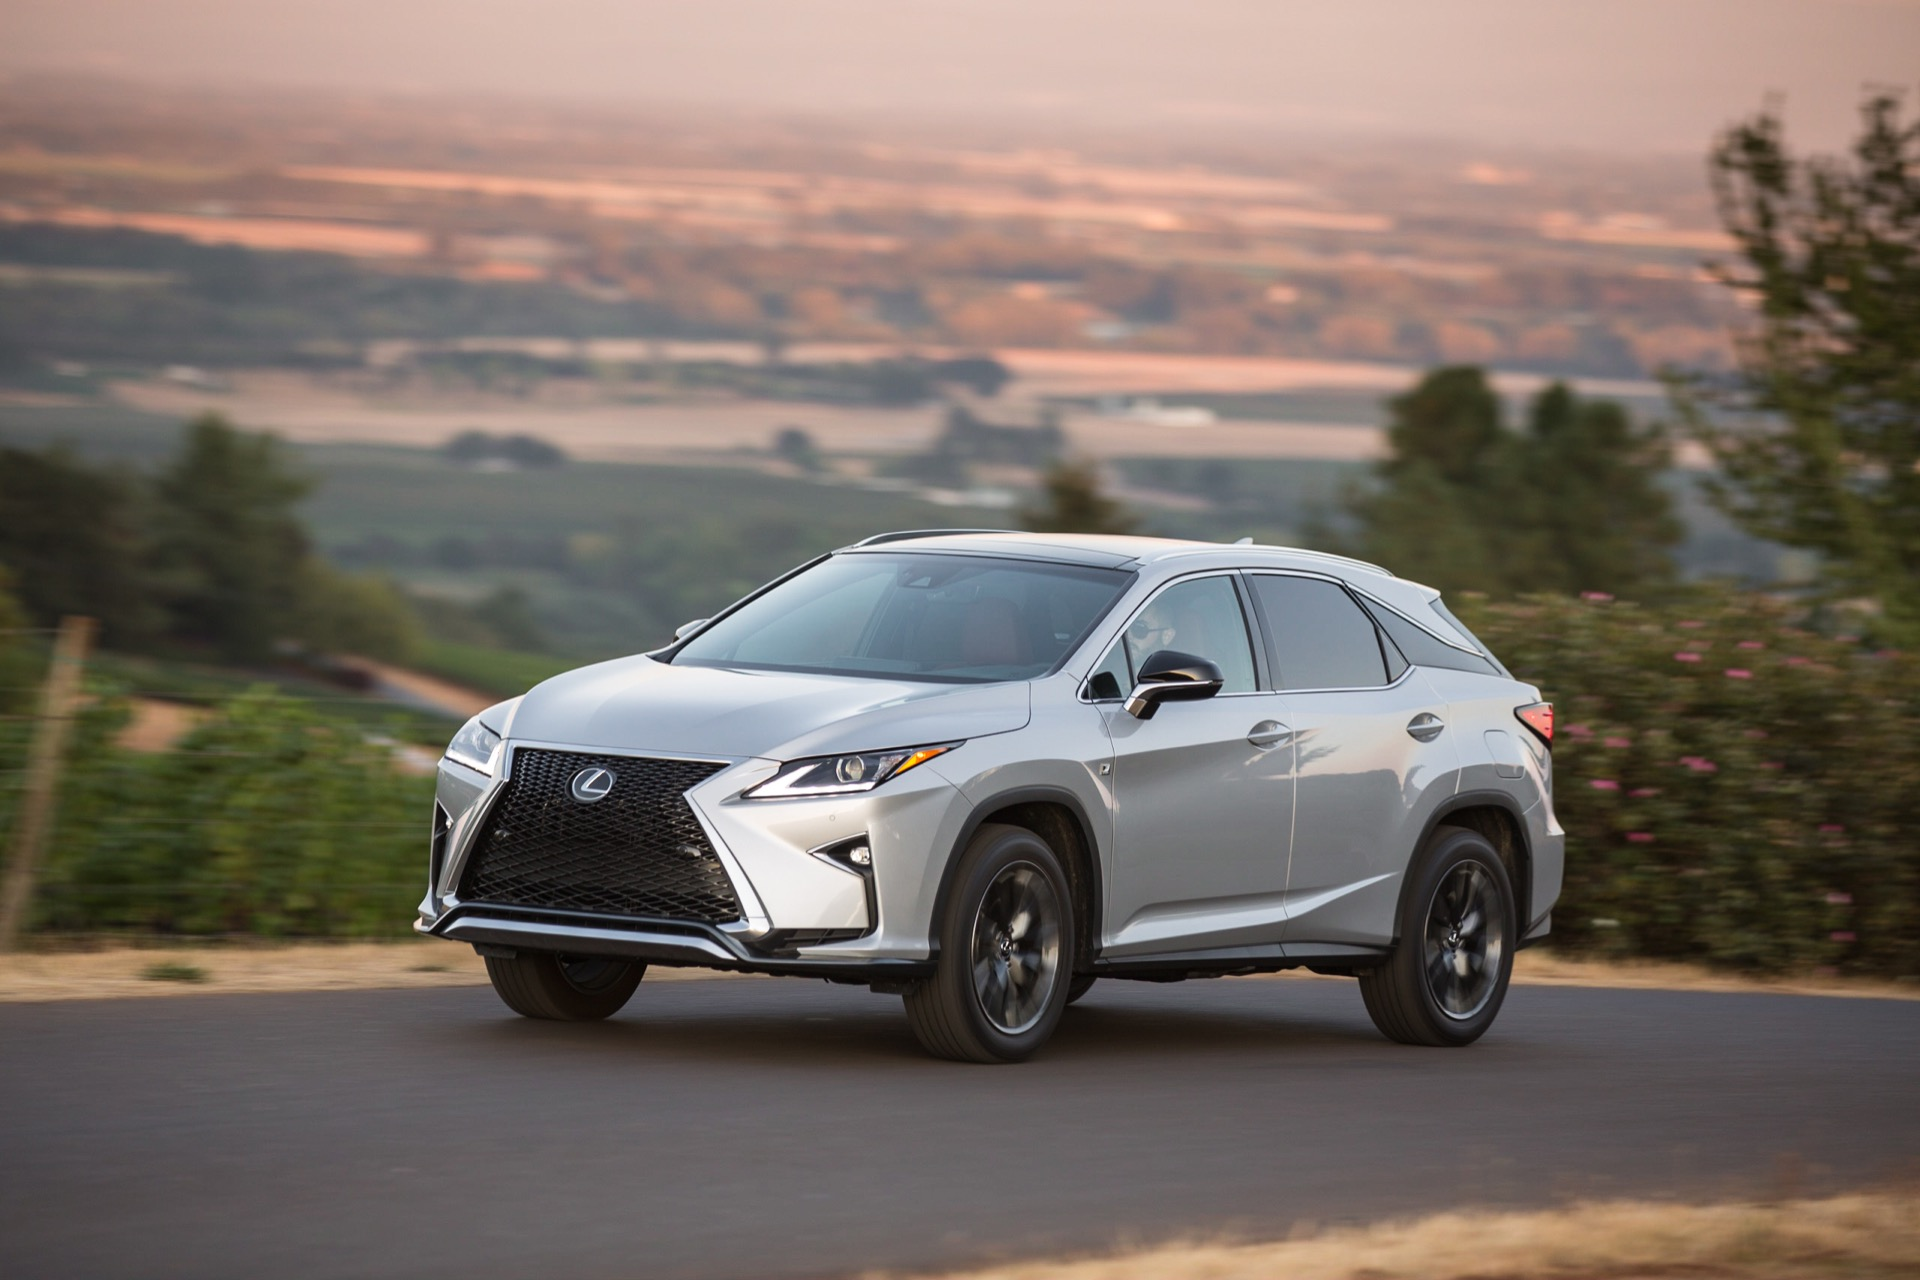 2016 lexus rx 350 performance review the car connection. Black Bedroom Furniture Sets. Home Design Ideas